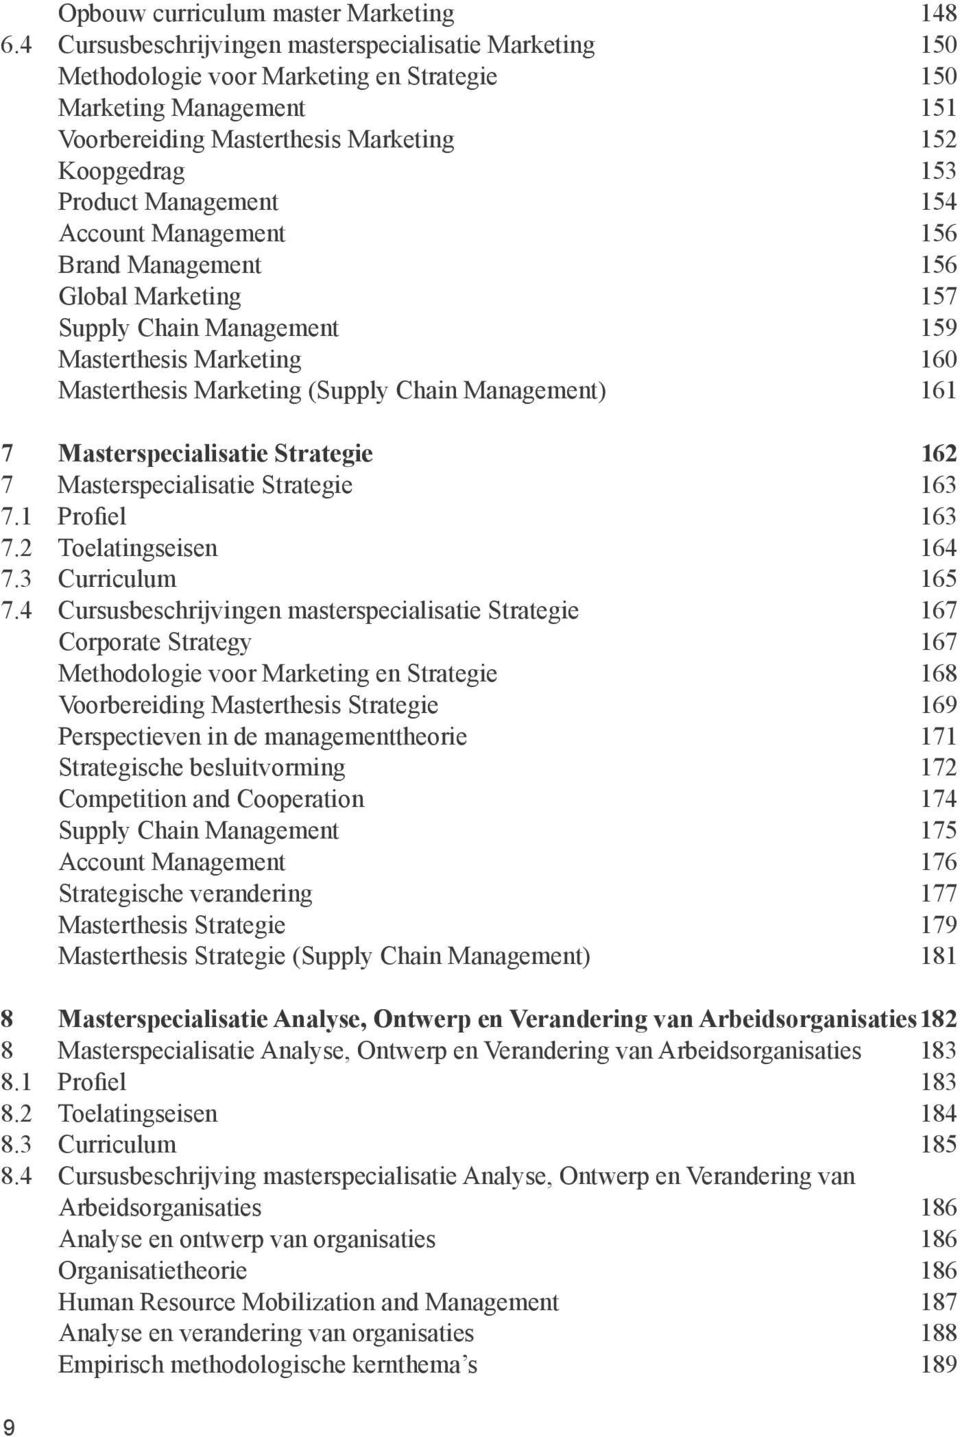 Management 154 Account Management 156 Brand Management 156 Global Marketing 157 Supply Chain Management 159 Masterthesis Marketing 160 Masterthesis Marketing (Supply Chain Management) 161 7